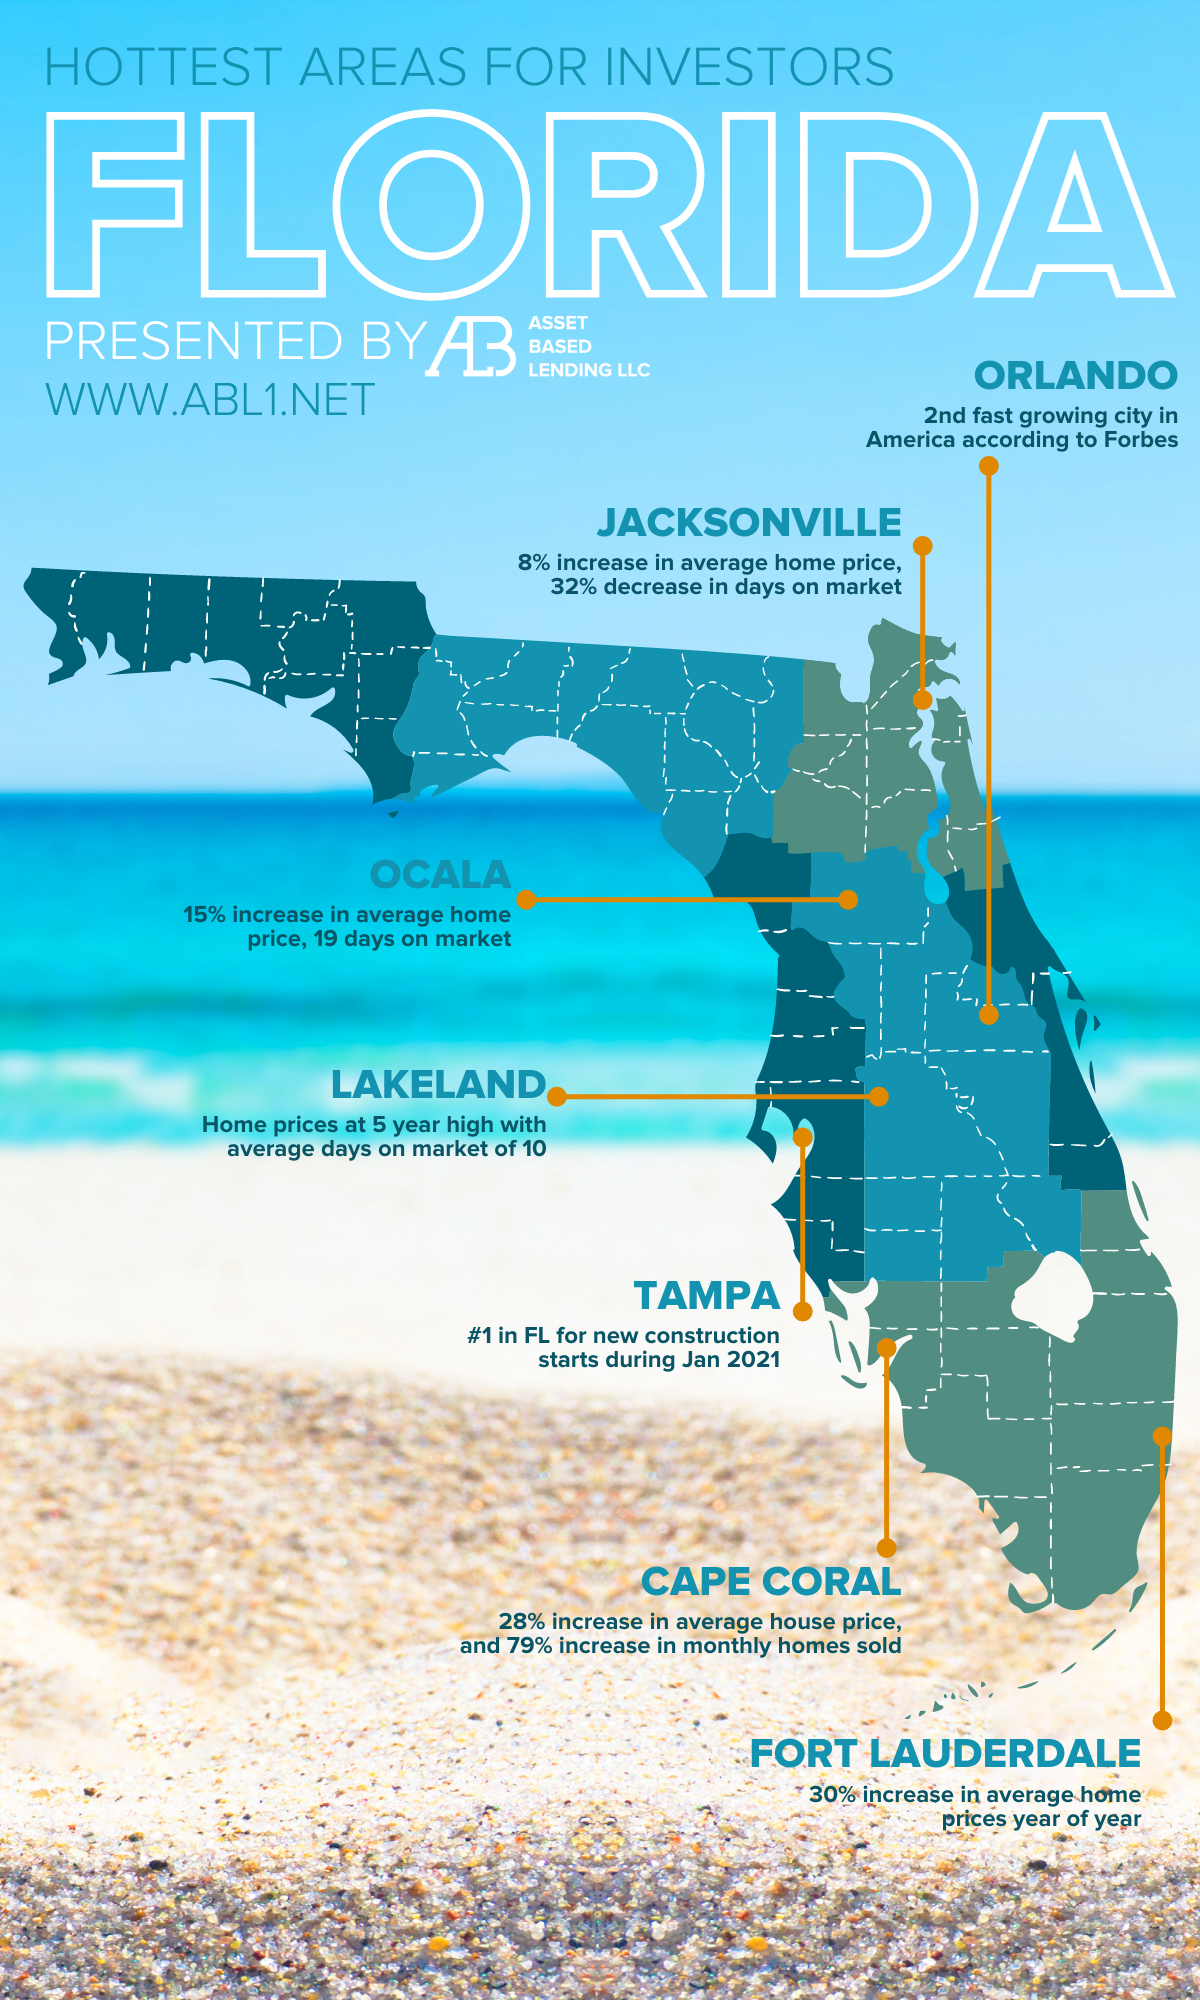 Best places to invest in Florida 2021